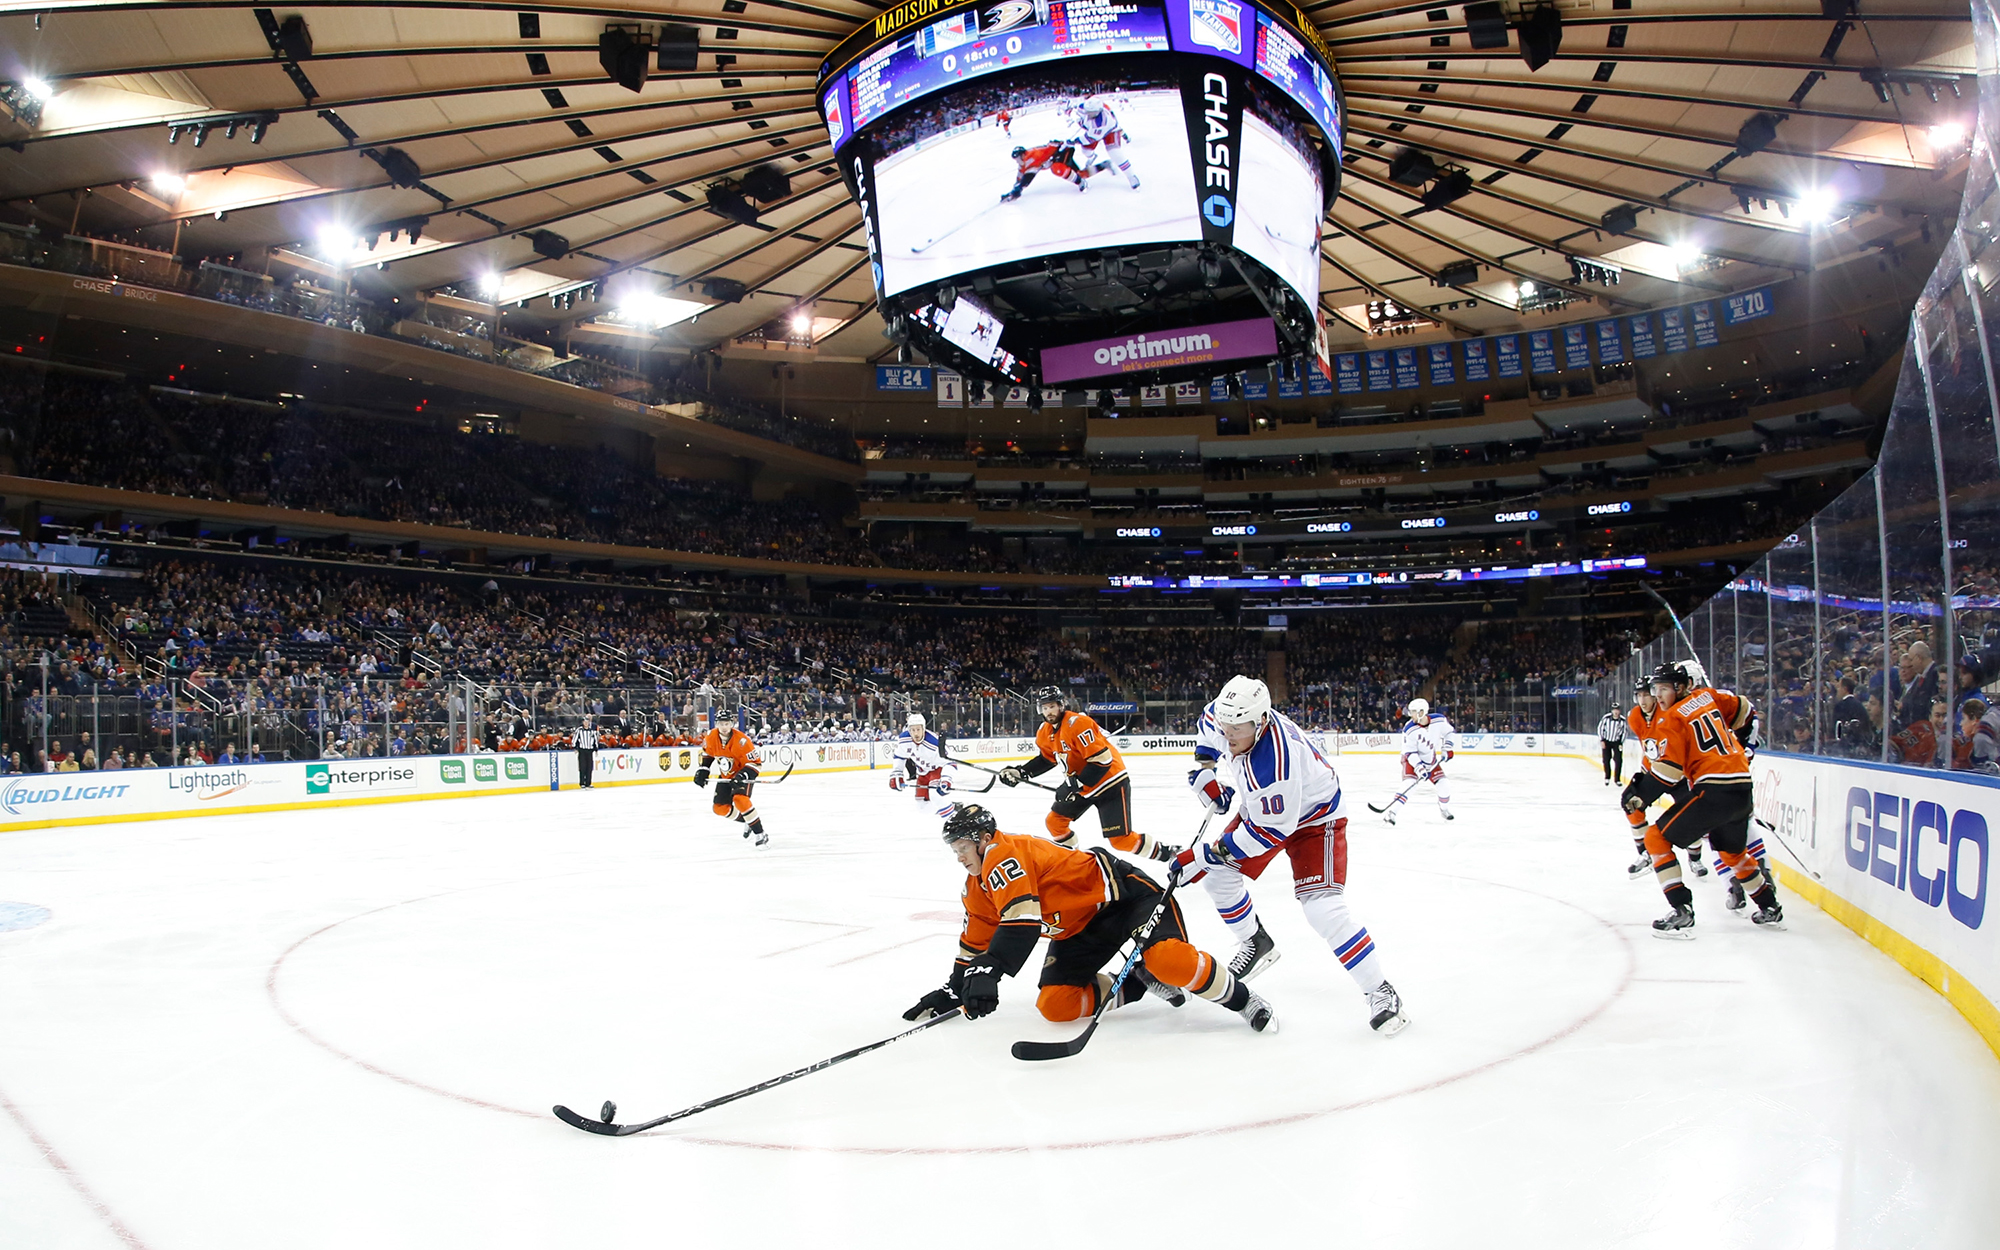 NEW YORK, NY - DECEMBER 22:  J.T. Miller #10 of the New York Rangers battles for the puck against Josh Manson #42 of the Anaheim Ducks at Madison Square Garden on December 22, 2015 in New York City. The New York Rangers won 3-2 in overtime. (Photo by Jare